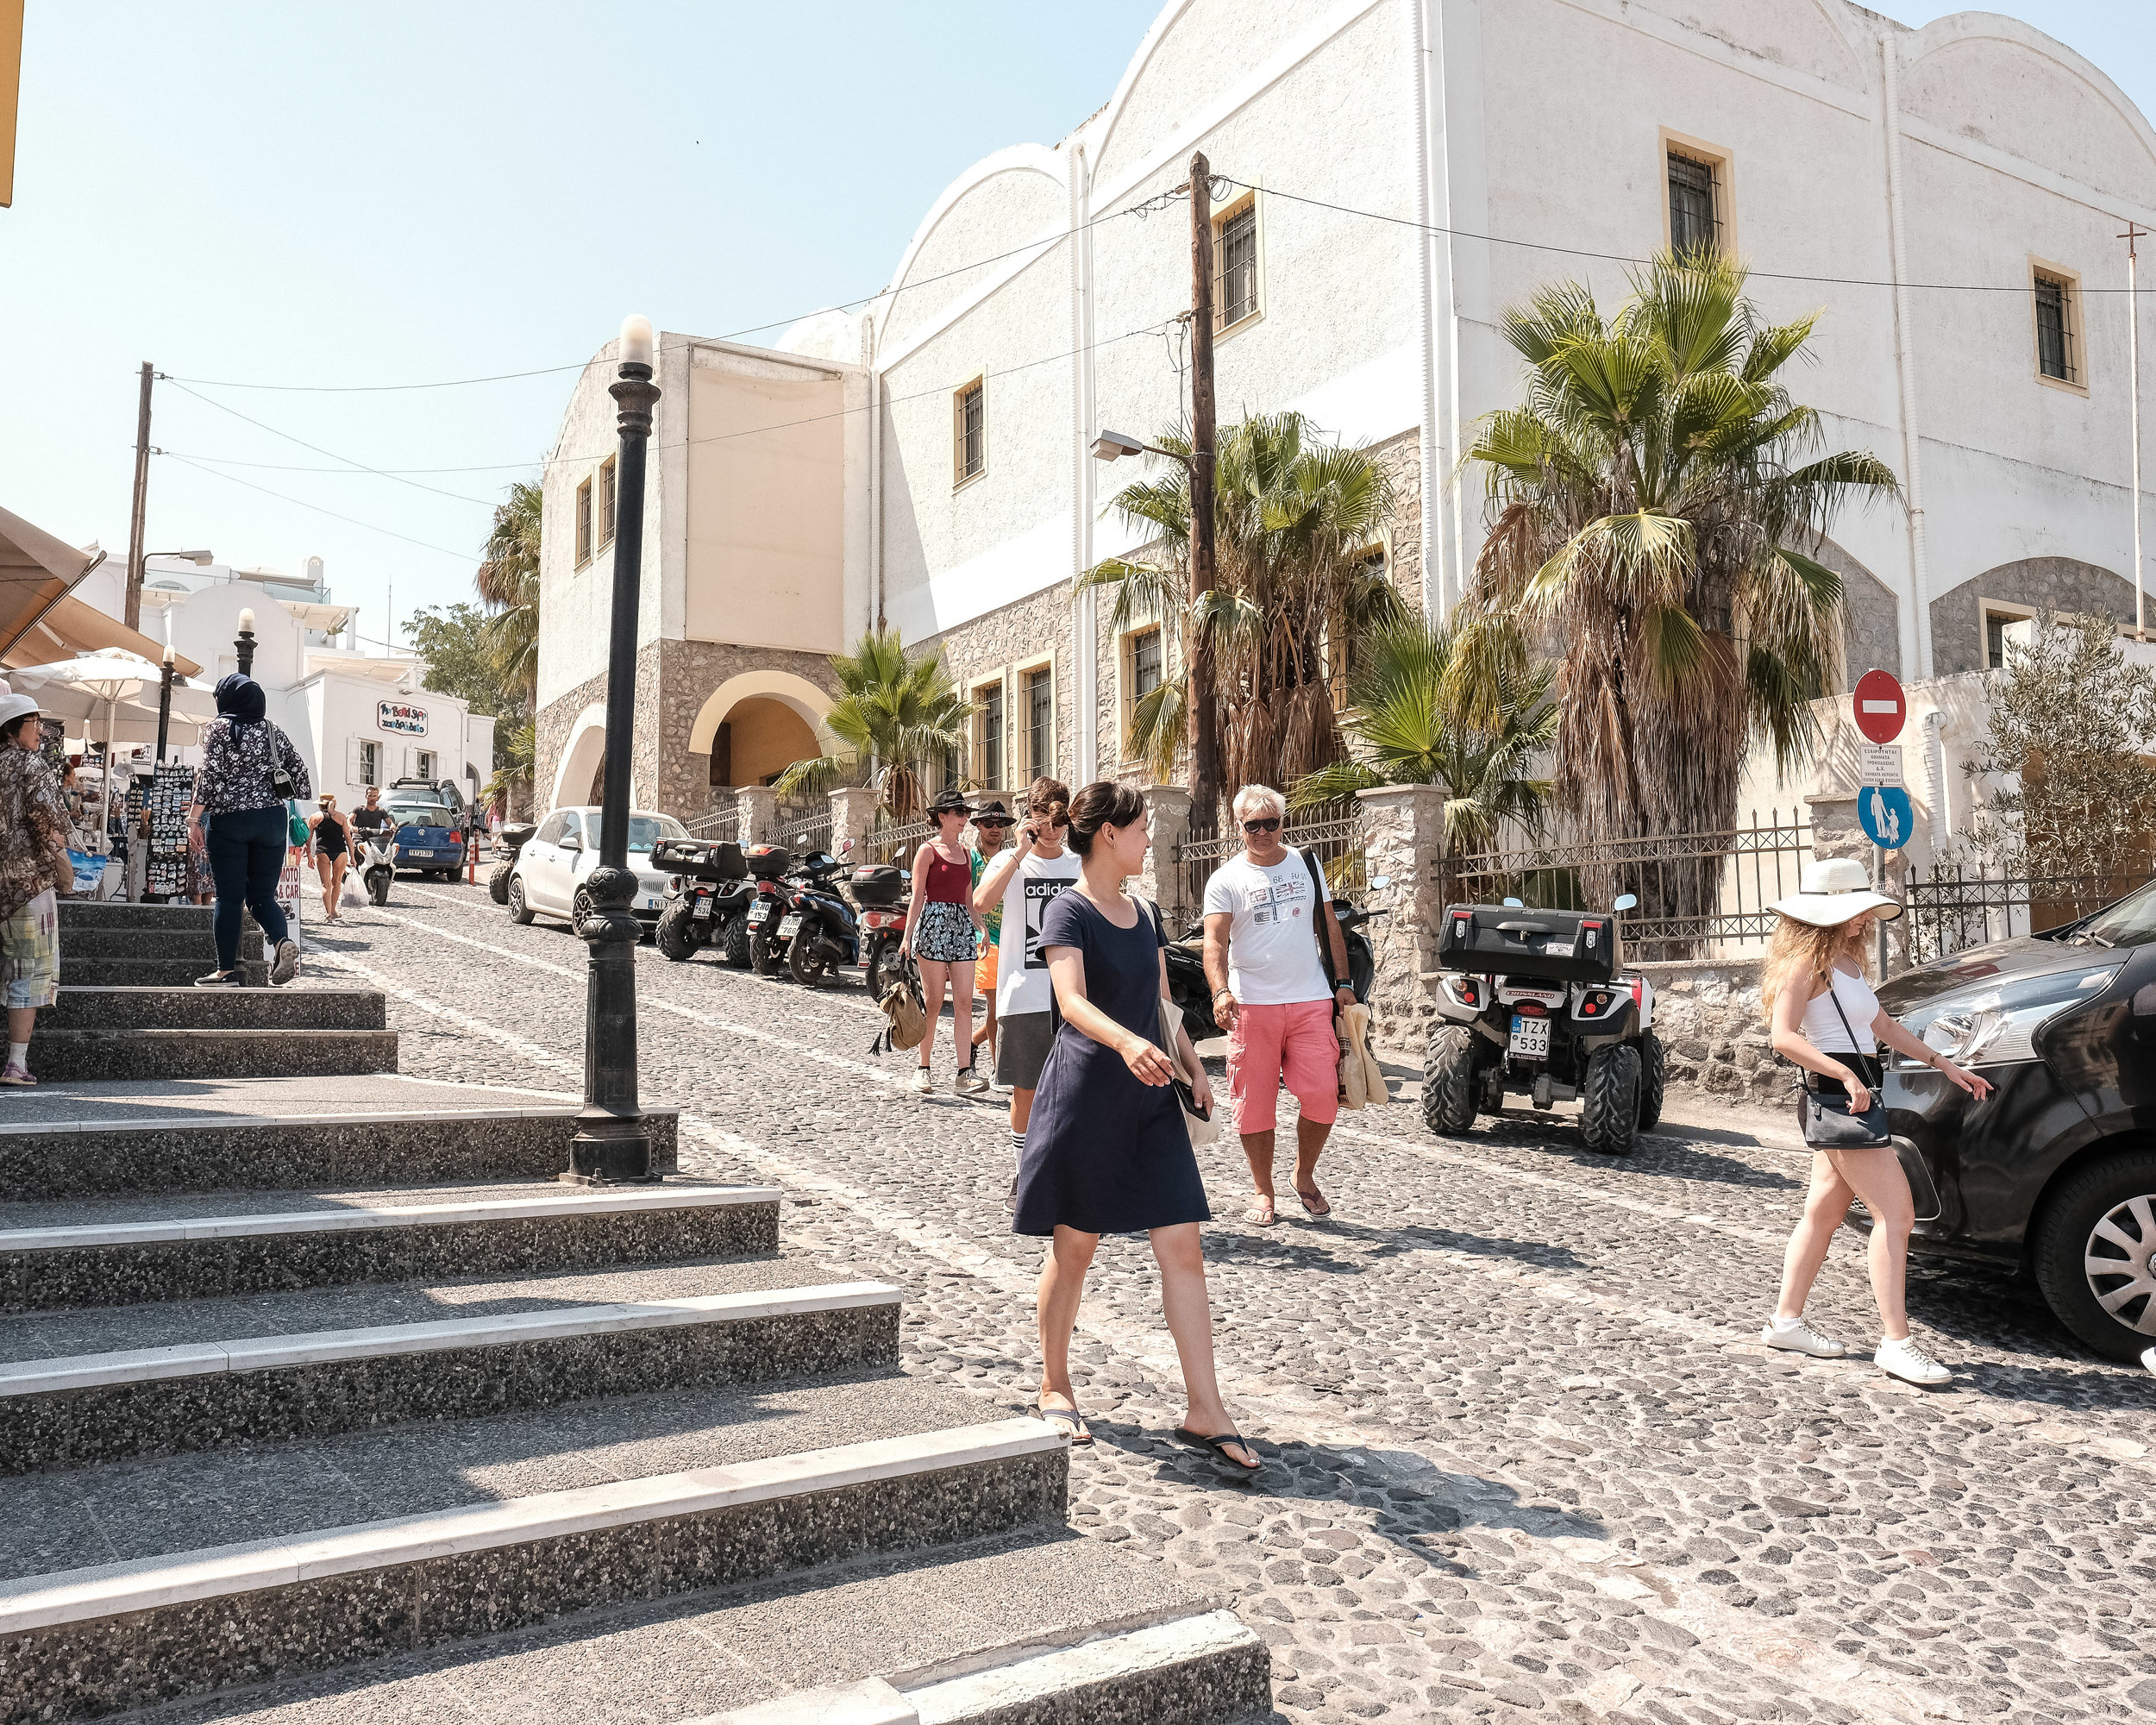 Walking around the pickup area in Fira